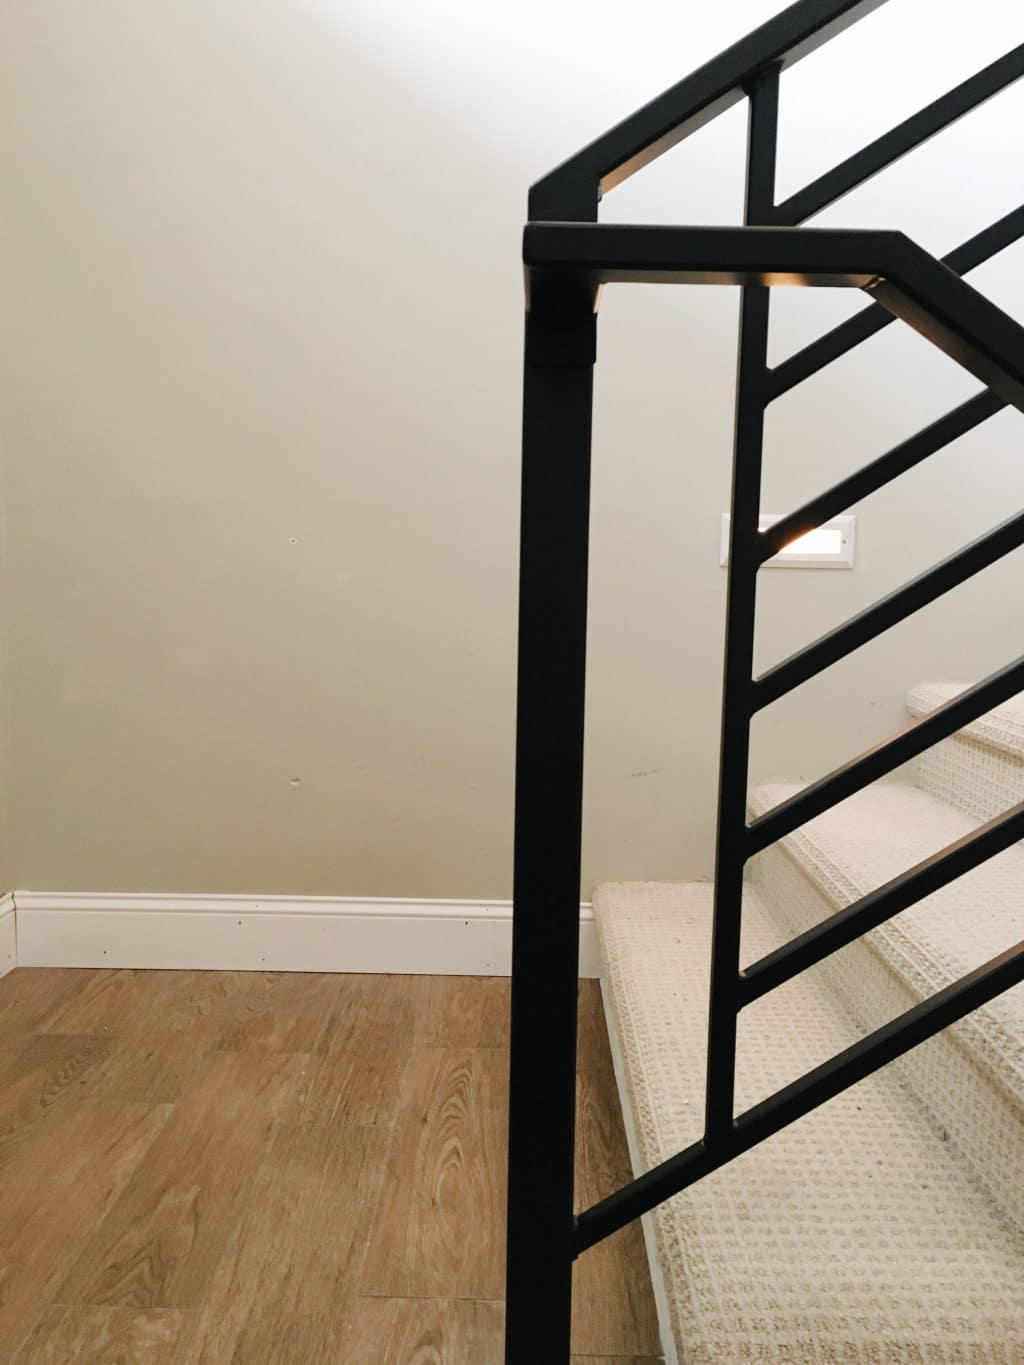 Horizontal handrail with vertical element | Chris Loves Julia